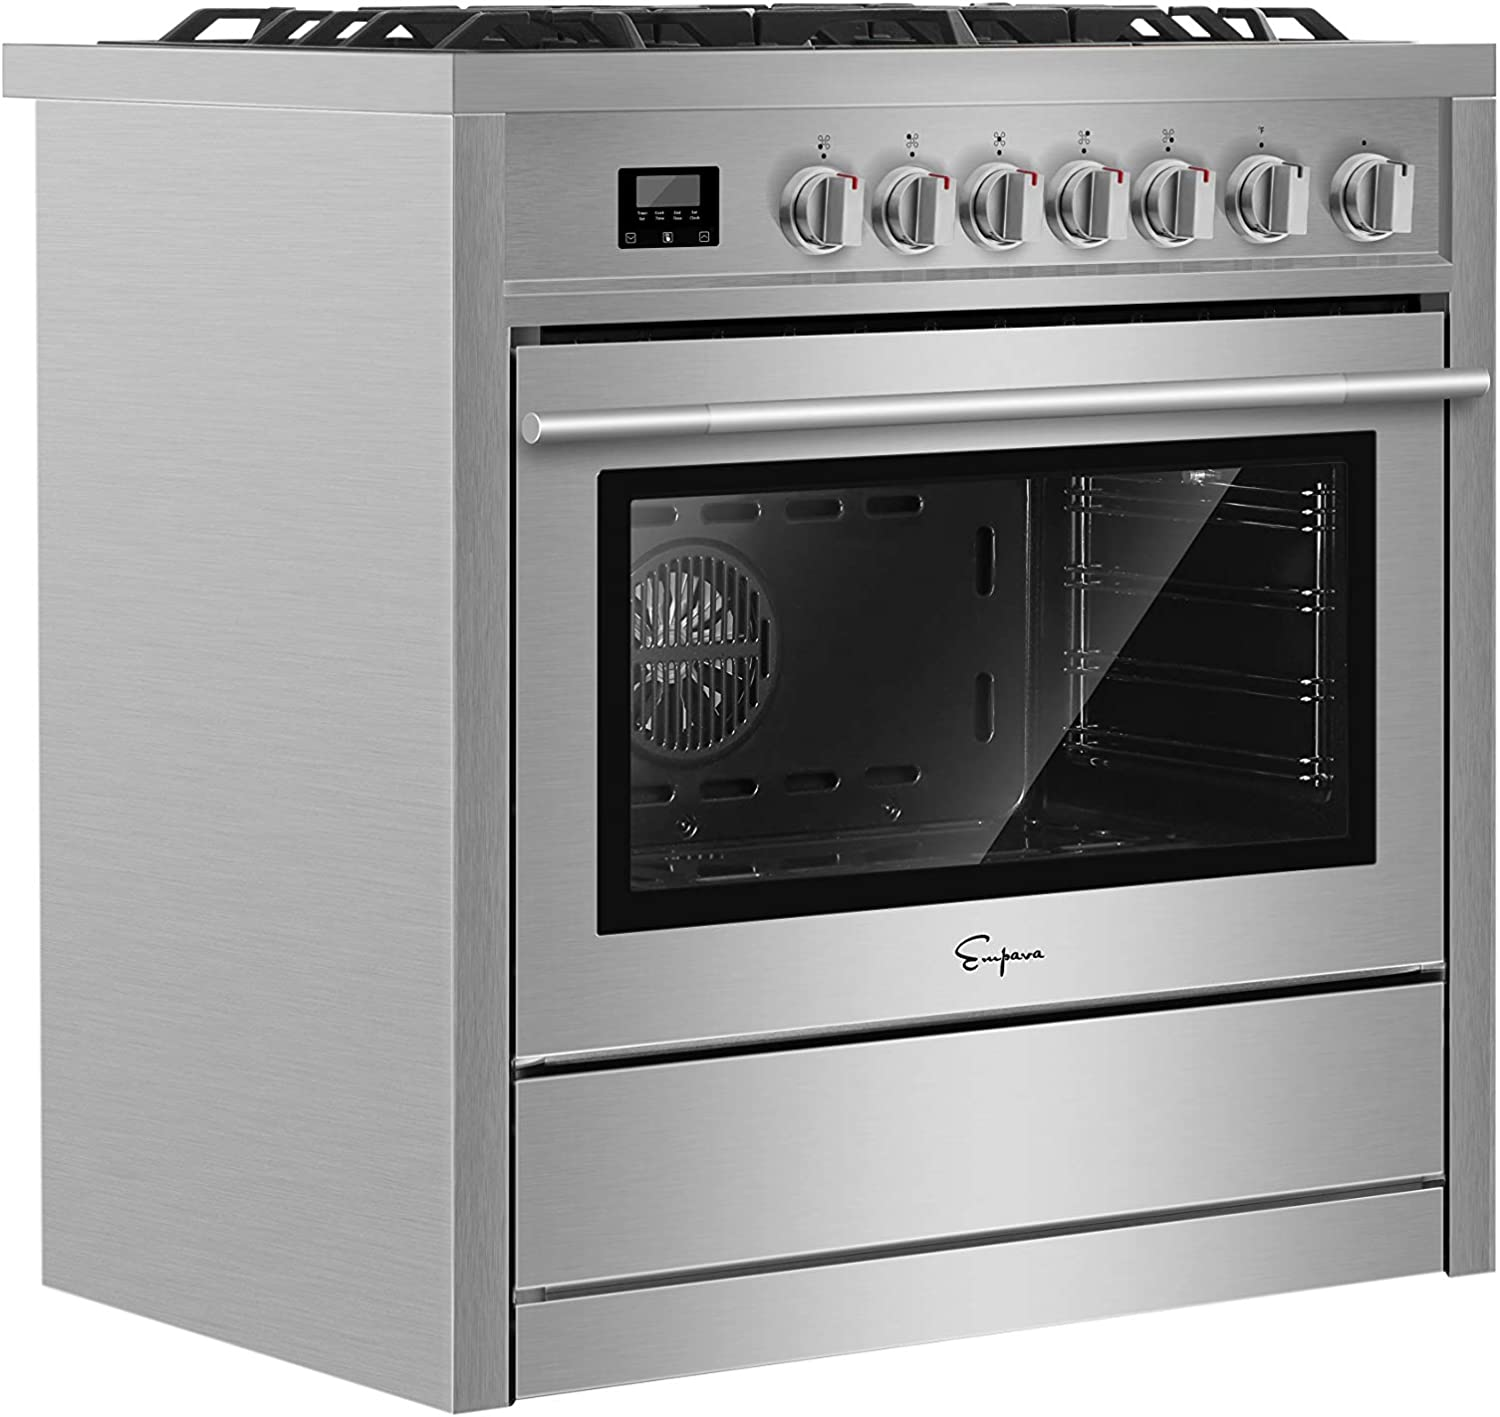 Empava : Gas cooktop with downdraft